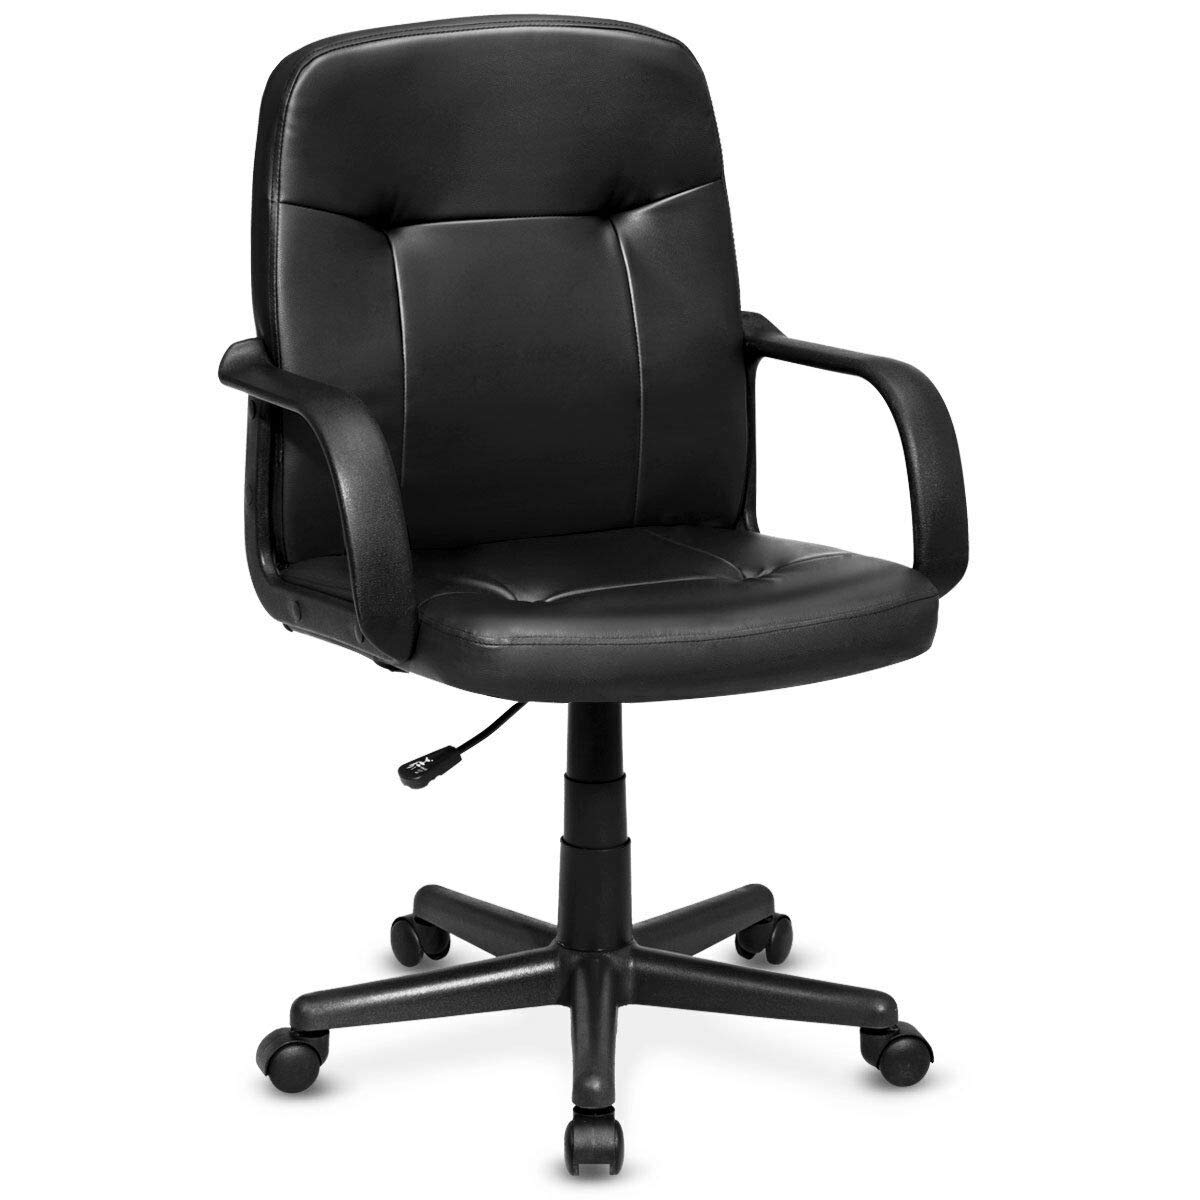 Giantex Mid Back Office Chair PU Leather Cushioned Seat with Armrest and Wheels for Home Office Furniture Ergonomic Swivel Computer Desk Task Chair, Black